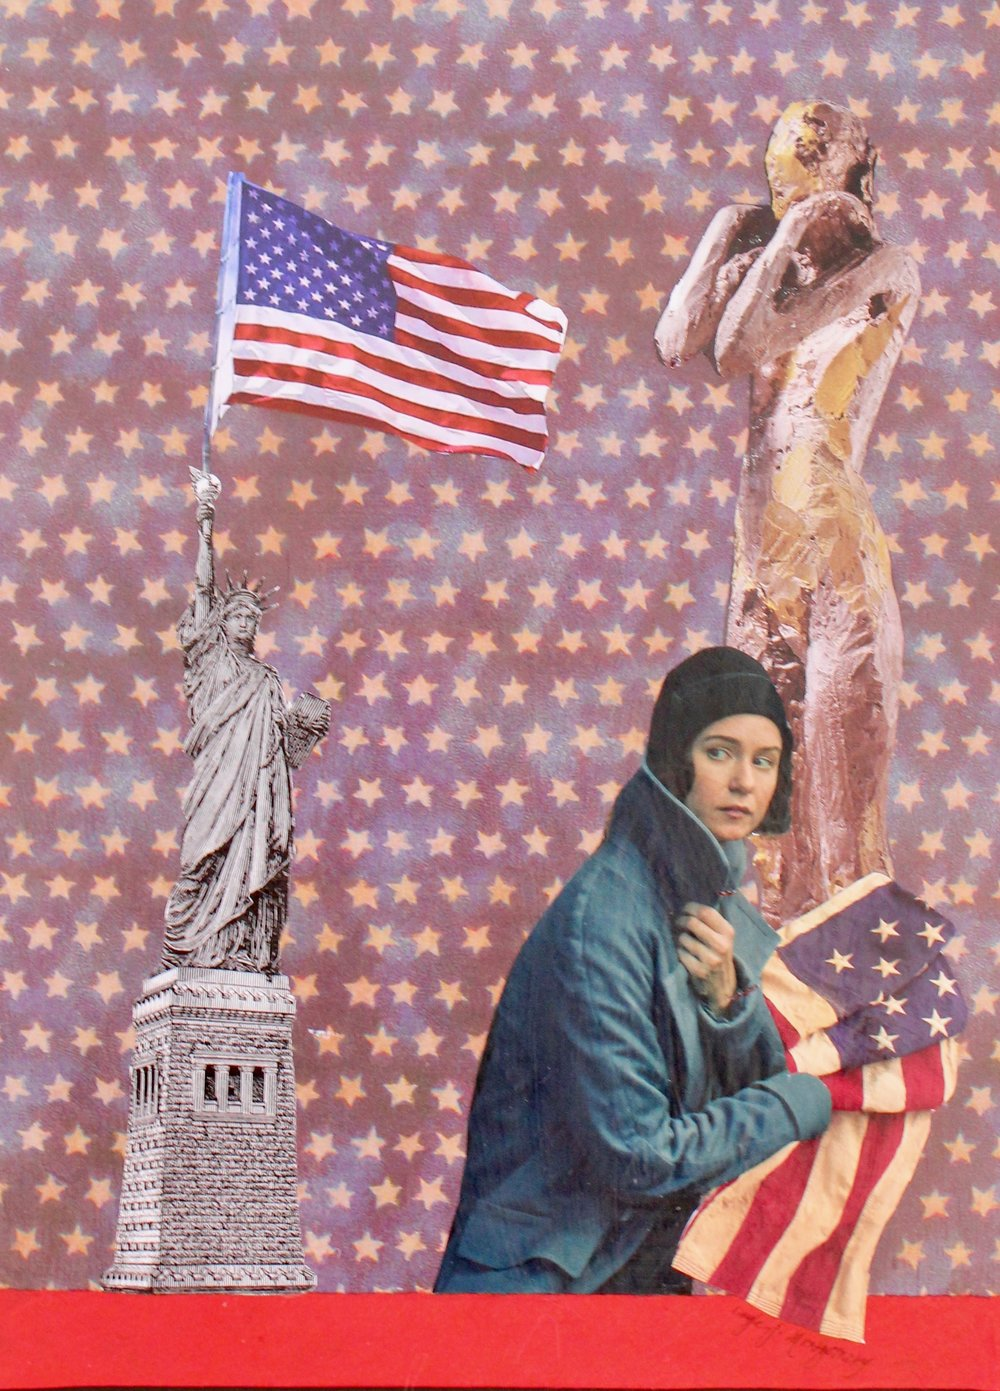 """Liberty Lost""  Each day I am appalled and saddened by Trump, his administration and the Congressmen that support him.  I have few ways of expressing my opinionsbut I join artists the world over that are creating pieces in protest.  ***  MUST NOT MISS  - The George Lucas Museum of Narrative Art is to be constructed in Los Angeles.  - If fabric art is the way you express your creativity, Colossal has now released DIY Indigo Textile Kits which are available at their shop:  www.thisiscolossal.com  - Shepard Fairy has now released a new series titled ""We the People"" in protest of the Trump administration.  - Netflix has launched a new documentary series ""Abstract:  The Art of Design"".  - The British Royal Mail will be honoring it's first artist, David Bowie, with a postage series.  - ""Loving Vincent"" a partially animated film has been released which examines the life of Vincent Van Gogh and 94 of his paintings.  - Did you know that in Las Vegas, Nevada there is a museum featuring old neon signs...visit the Las Vegas Neon Museum if you visit.  ***  LOCAL  ""Salvaged"" showcases the collage and paper works of Kate River at David Anthony Fine Art in Taos, New Mexico through March 31st.  ""Continuum:  Light, Space and Time"" continues at the Harwood Museum in Taos, New Mexico through May 21st.  - ""Time Frozen"" is a new exhibit at Vivo Contemporary in Santa Fe, New Mexico through March 14th.  - ""New Works"" featuring Cynthia Cook and Karen Brown are being show through March 31st at Mariposa Gallery in Albuquerque, New Mexico.  ***  NATIONAL  - ""Surreal/Unreal"" continues at Jack Rutberg Fine Arts in Los Angeles, California through February 18th.  - ""Larry Bell"" is at the Lisa Smith Wengler Center for the Arts in Malibu, California through April 2nd.  - The fabulous work of Greg Miller is featured and the William Turner Gallery in Santa Monica, California through March 4th.  - Frida Kahlo's art is now on view at the Dali Museum in St. Peterburg, Florida through April 17th.  ***  INTERNATIONAL  - Through February 25th Marlborough Fine Arts in London, England exhibits etchings and lithographs of Sigmund Freud and Francis Bacon.  - The Festival of Textiles is now on view at the Fashion and Textile Museum in London, England through May 7th.  ***  In closing, I wish all of you a deliciously sweet and colorful Valentine's Day.  Fill your month with creativity and the joy found there.  ***  You may reach me with any questions at:  livingartontheedge@gmail.com  You may view my art at:  www.thefullcirclestudio.com"